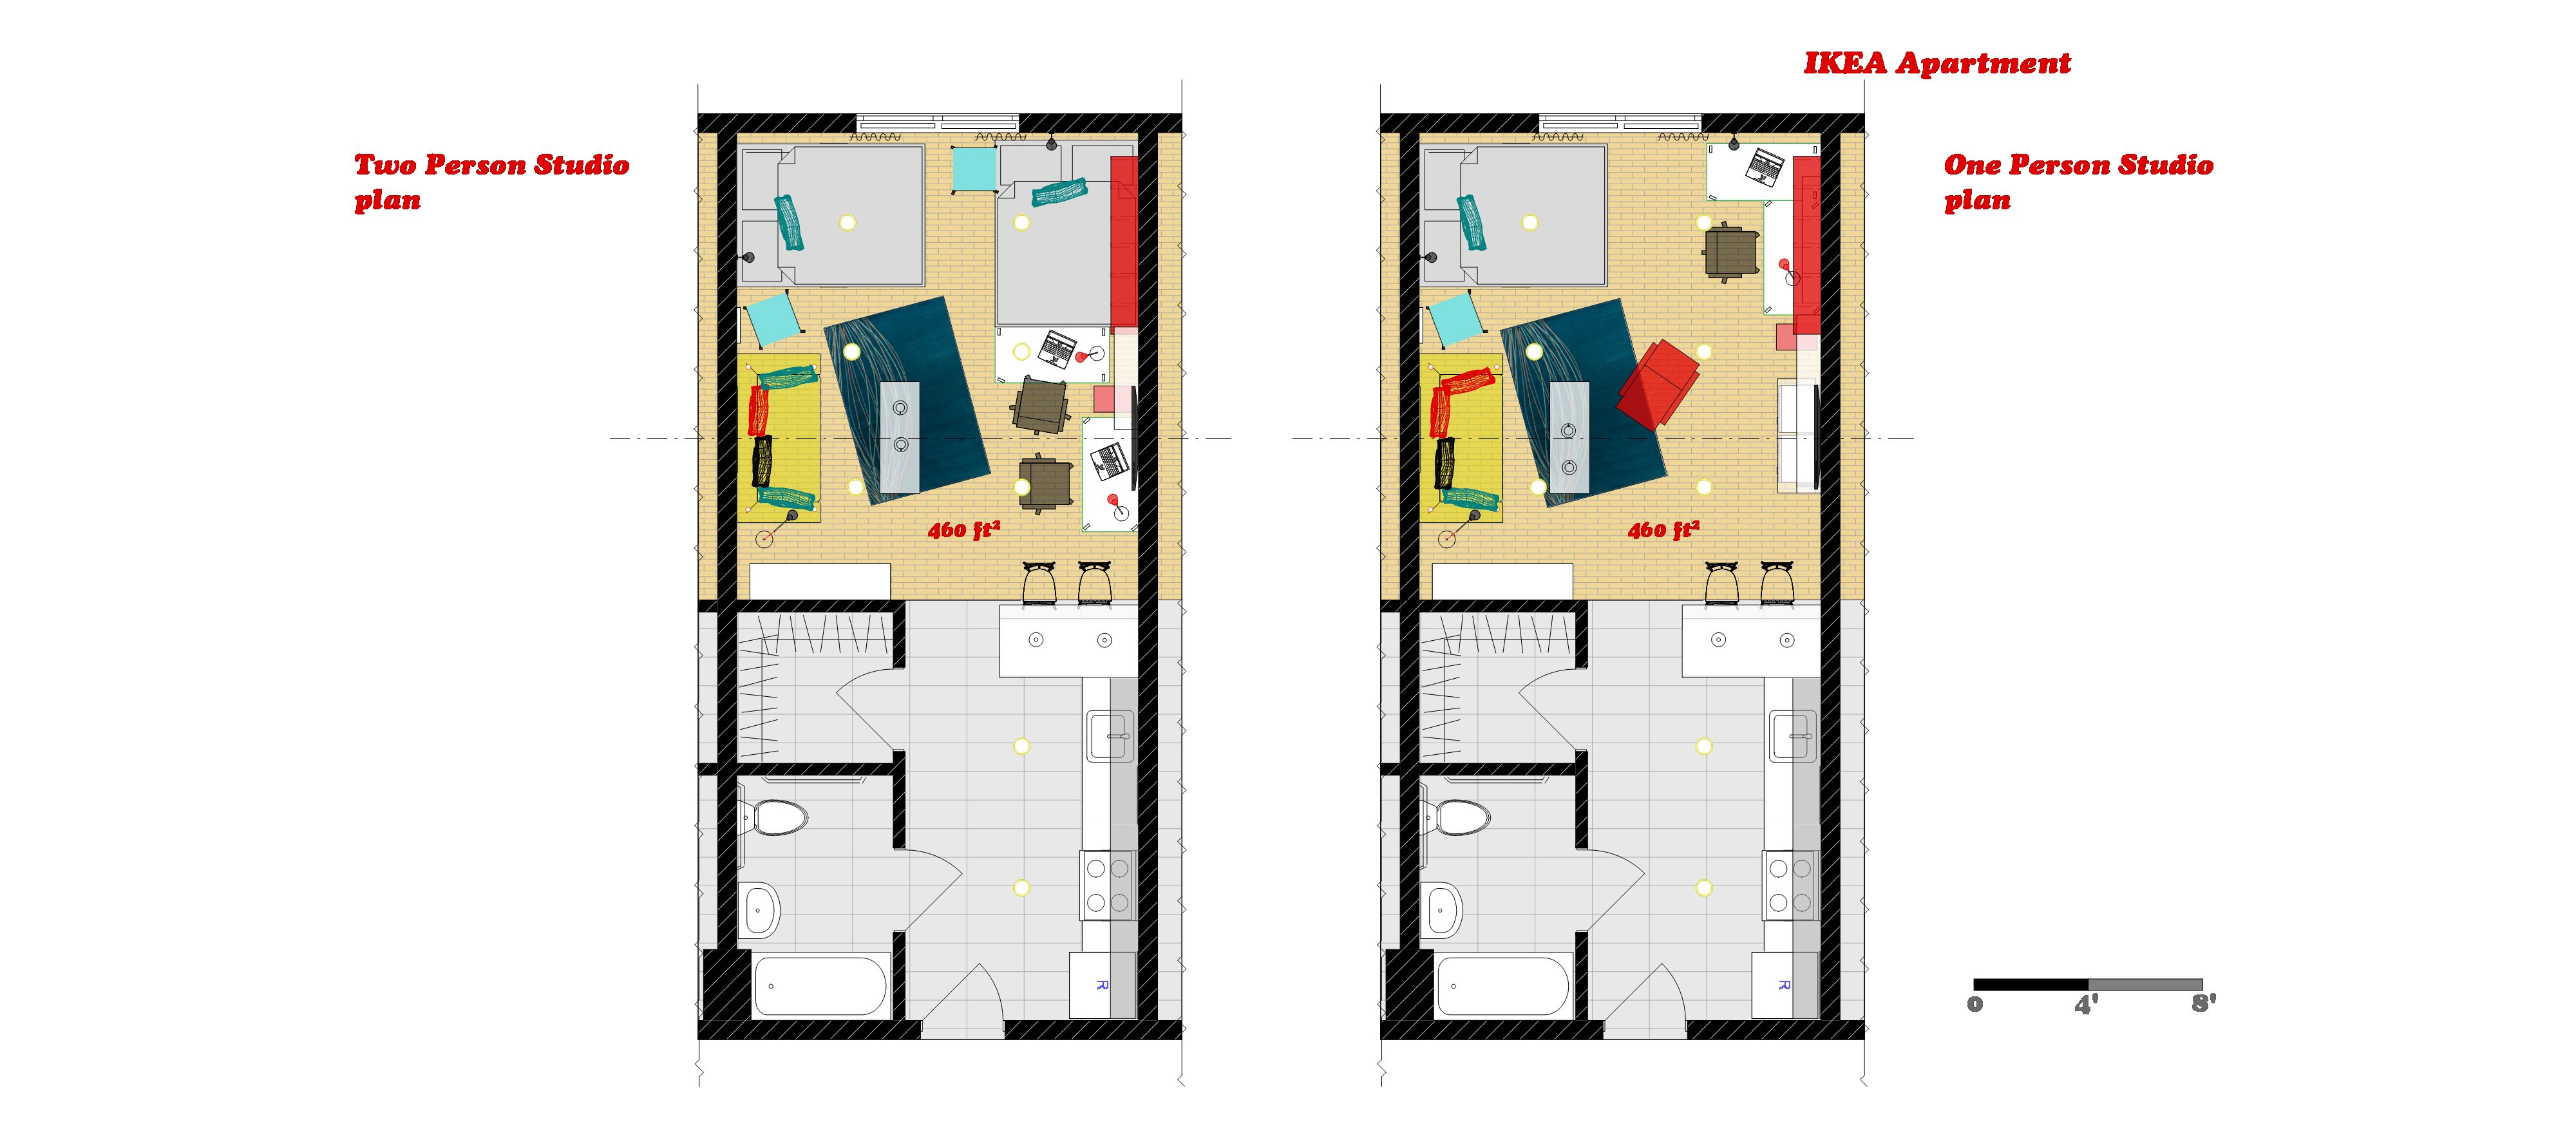 Apartment design ikea home design 2015 for Studio layout plan